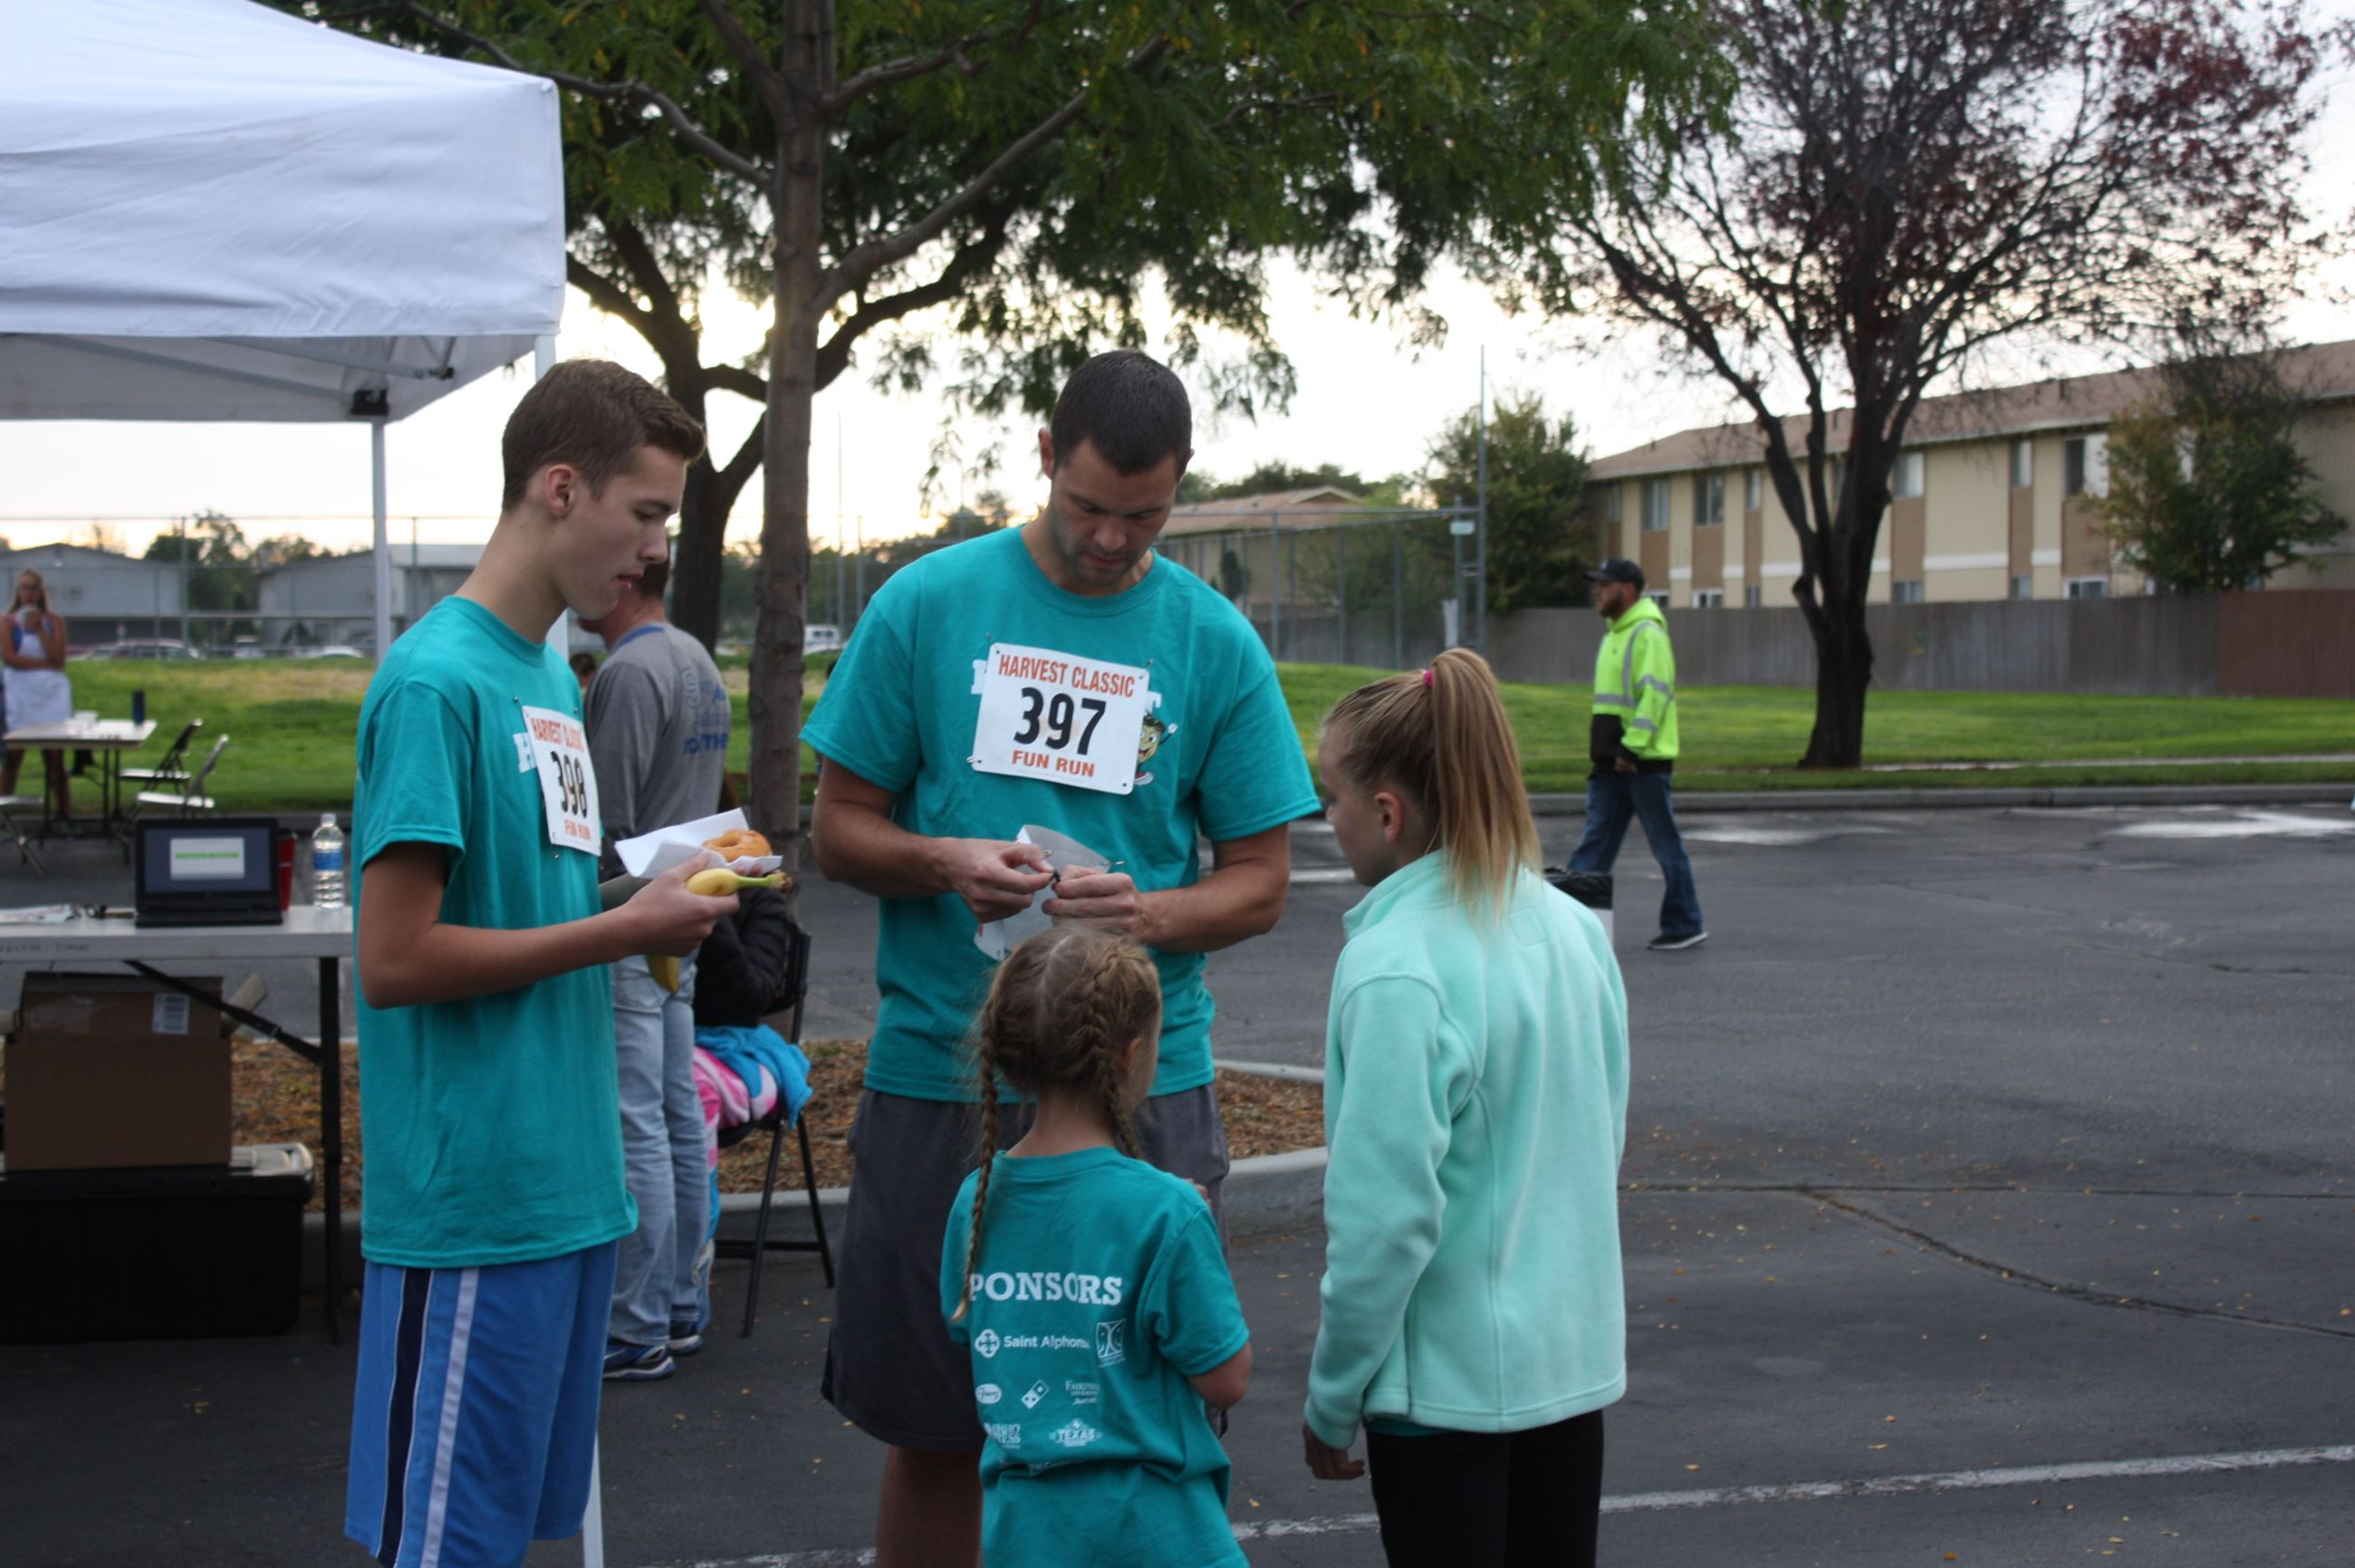 Man and children putting on race numbers at Harvest Classic